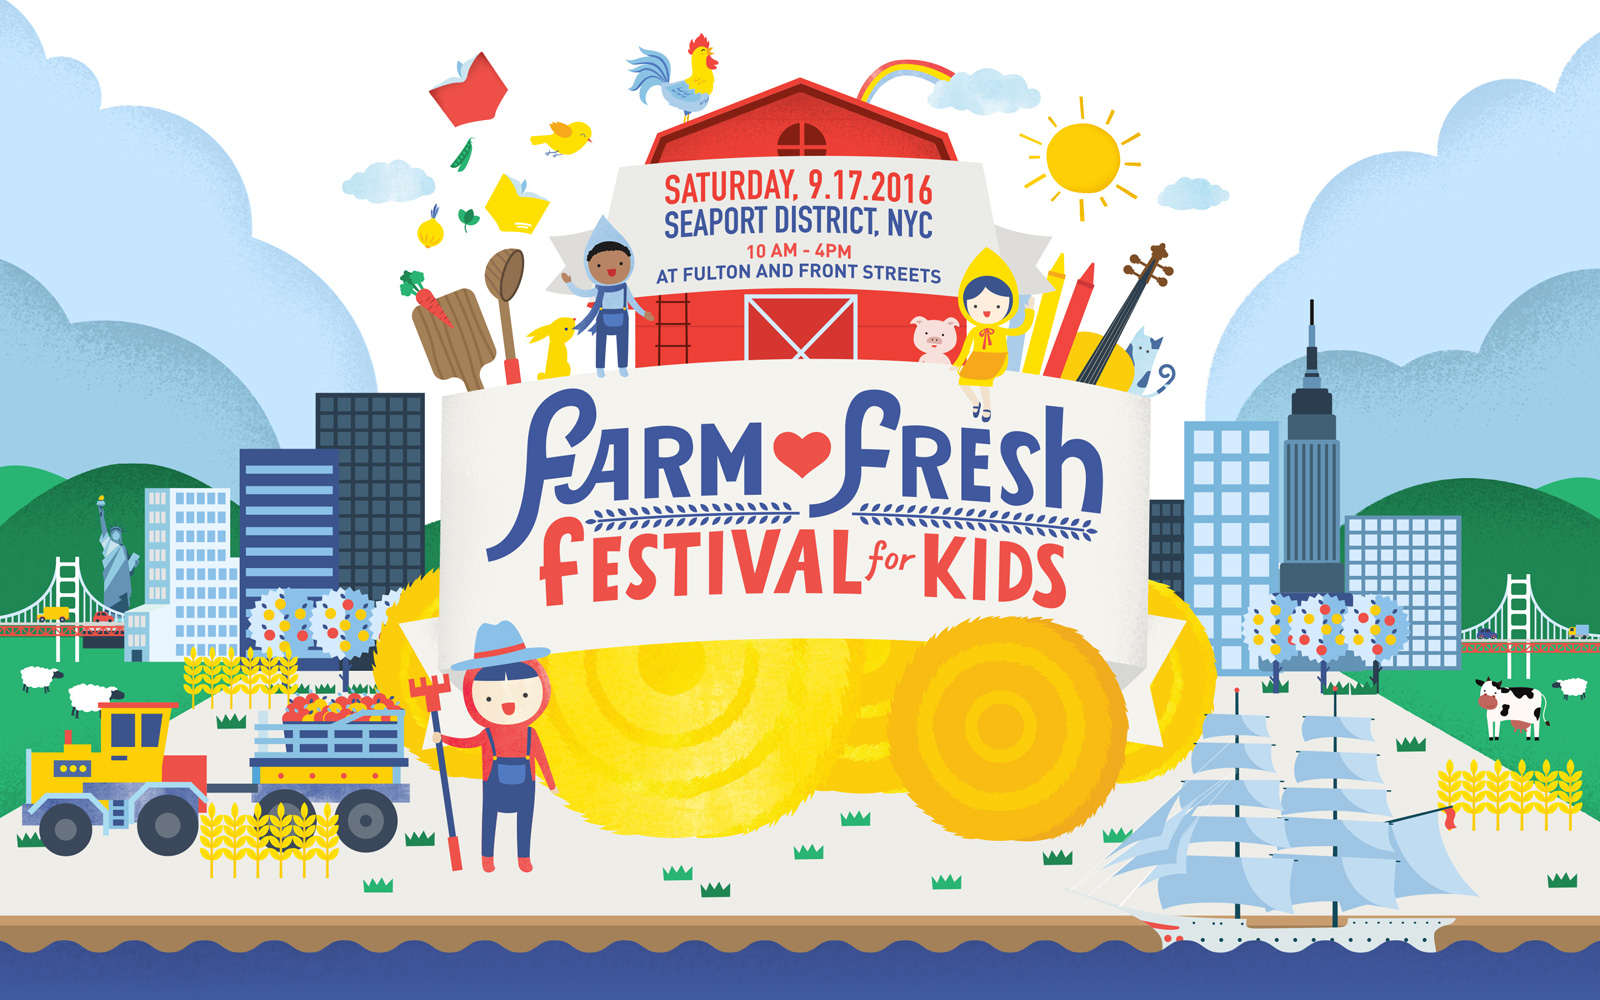 Farm Fresh Festival for Kids